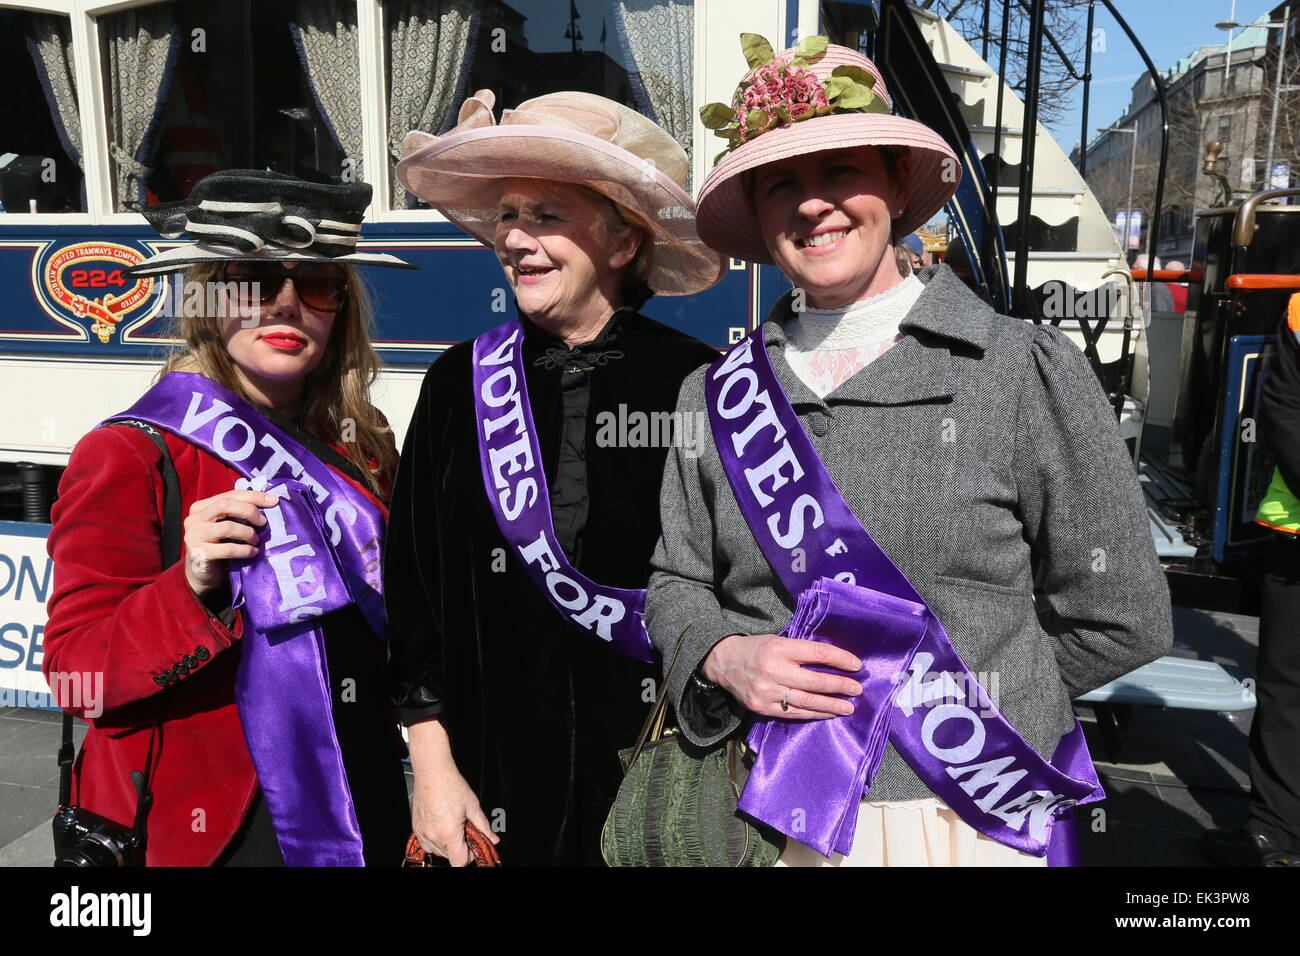 Dublin, Ireland. 06th Apr, 2015. Women dressed as Suffragettes during the recreation of Easter 1915 in Dublin city Stock Photo